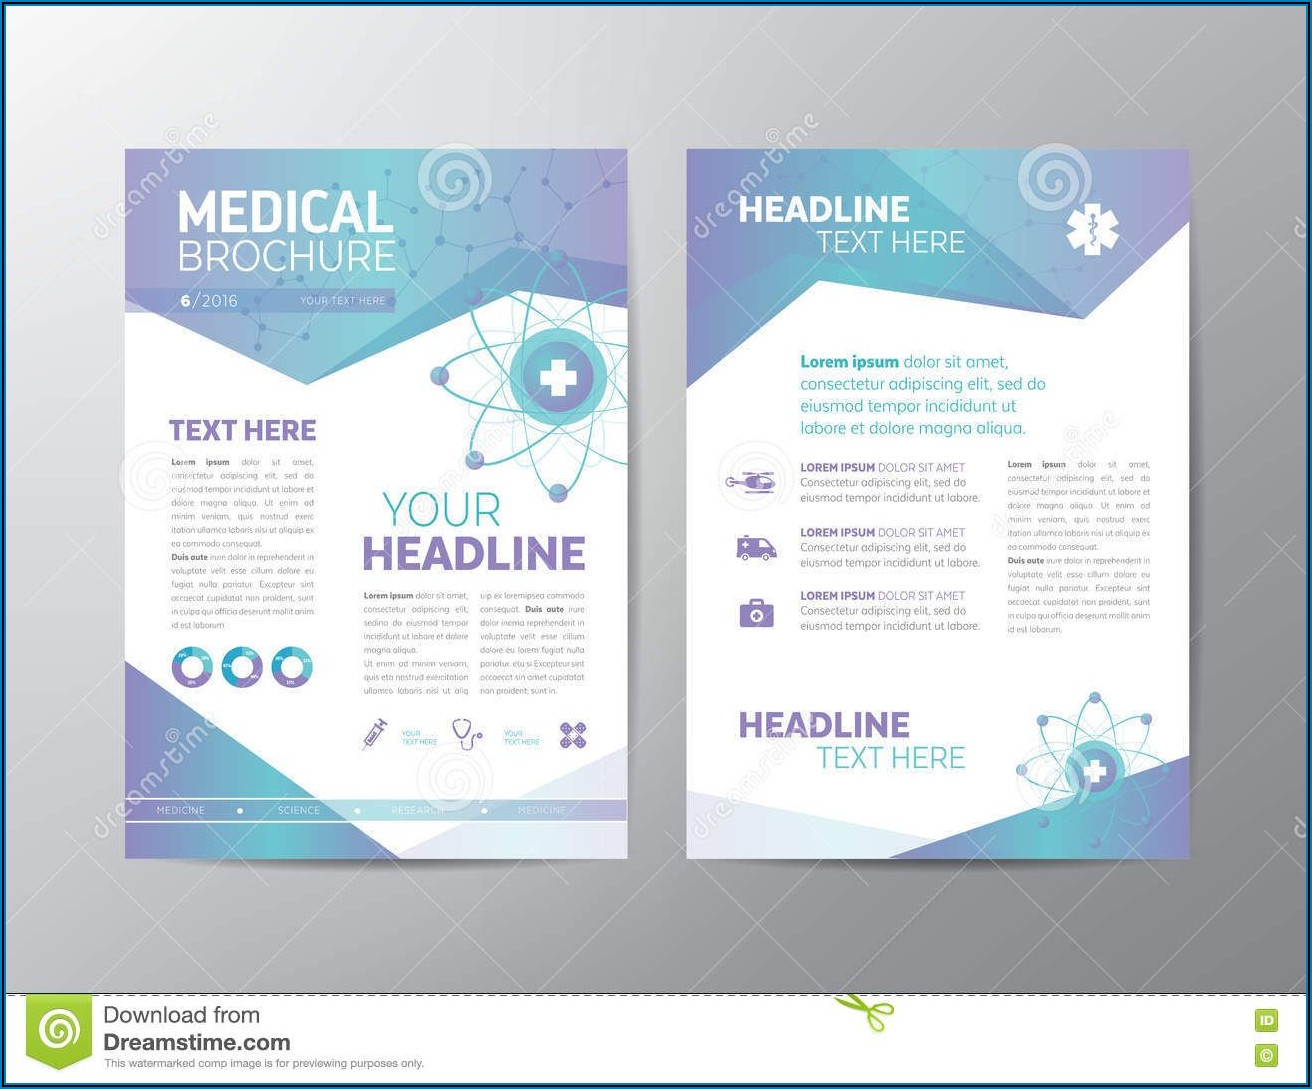 Medical Brochure Templates Microsoft Word Free